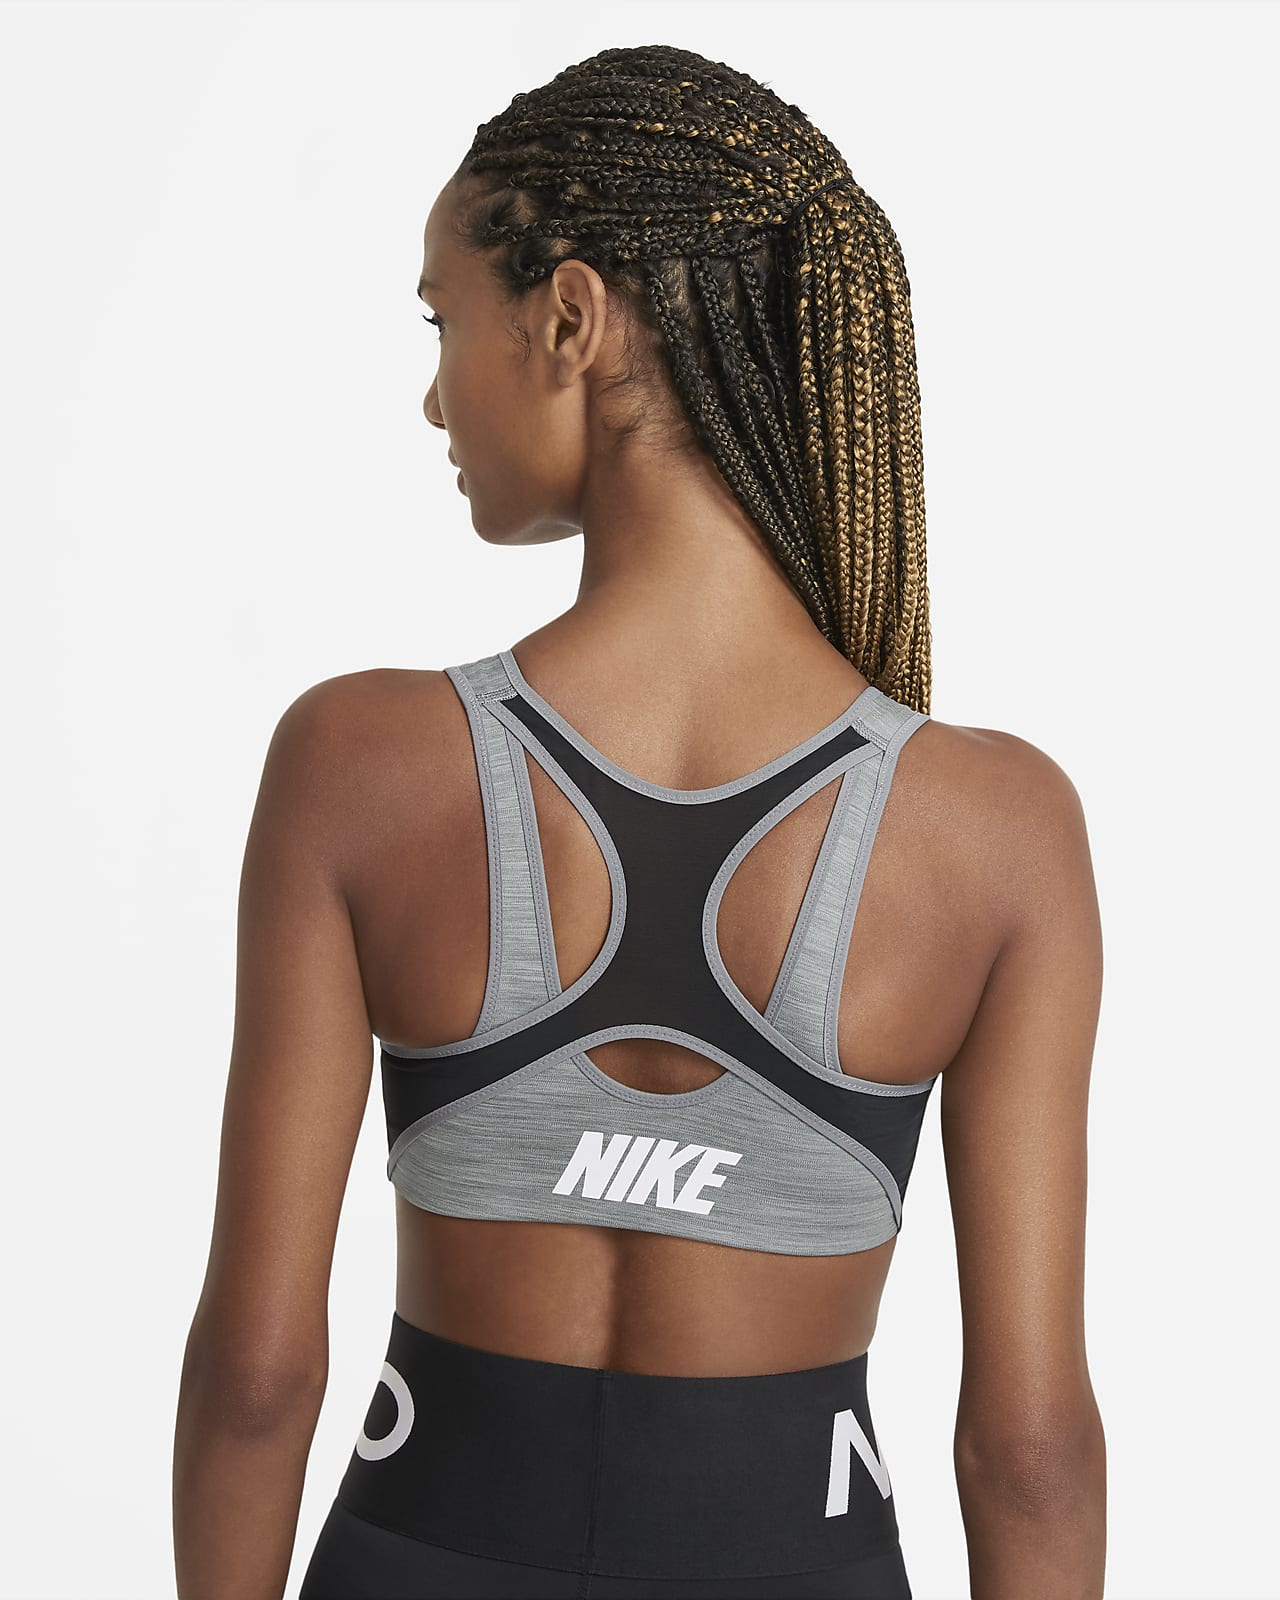 Womens Racerback Sports Bras Activewear Bra with Removable Pads Medium Impact Workout Gym Bra,Swimsuit Top